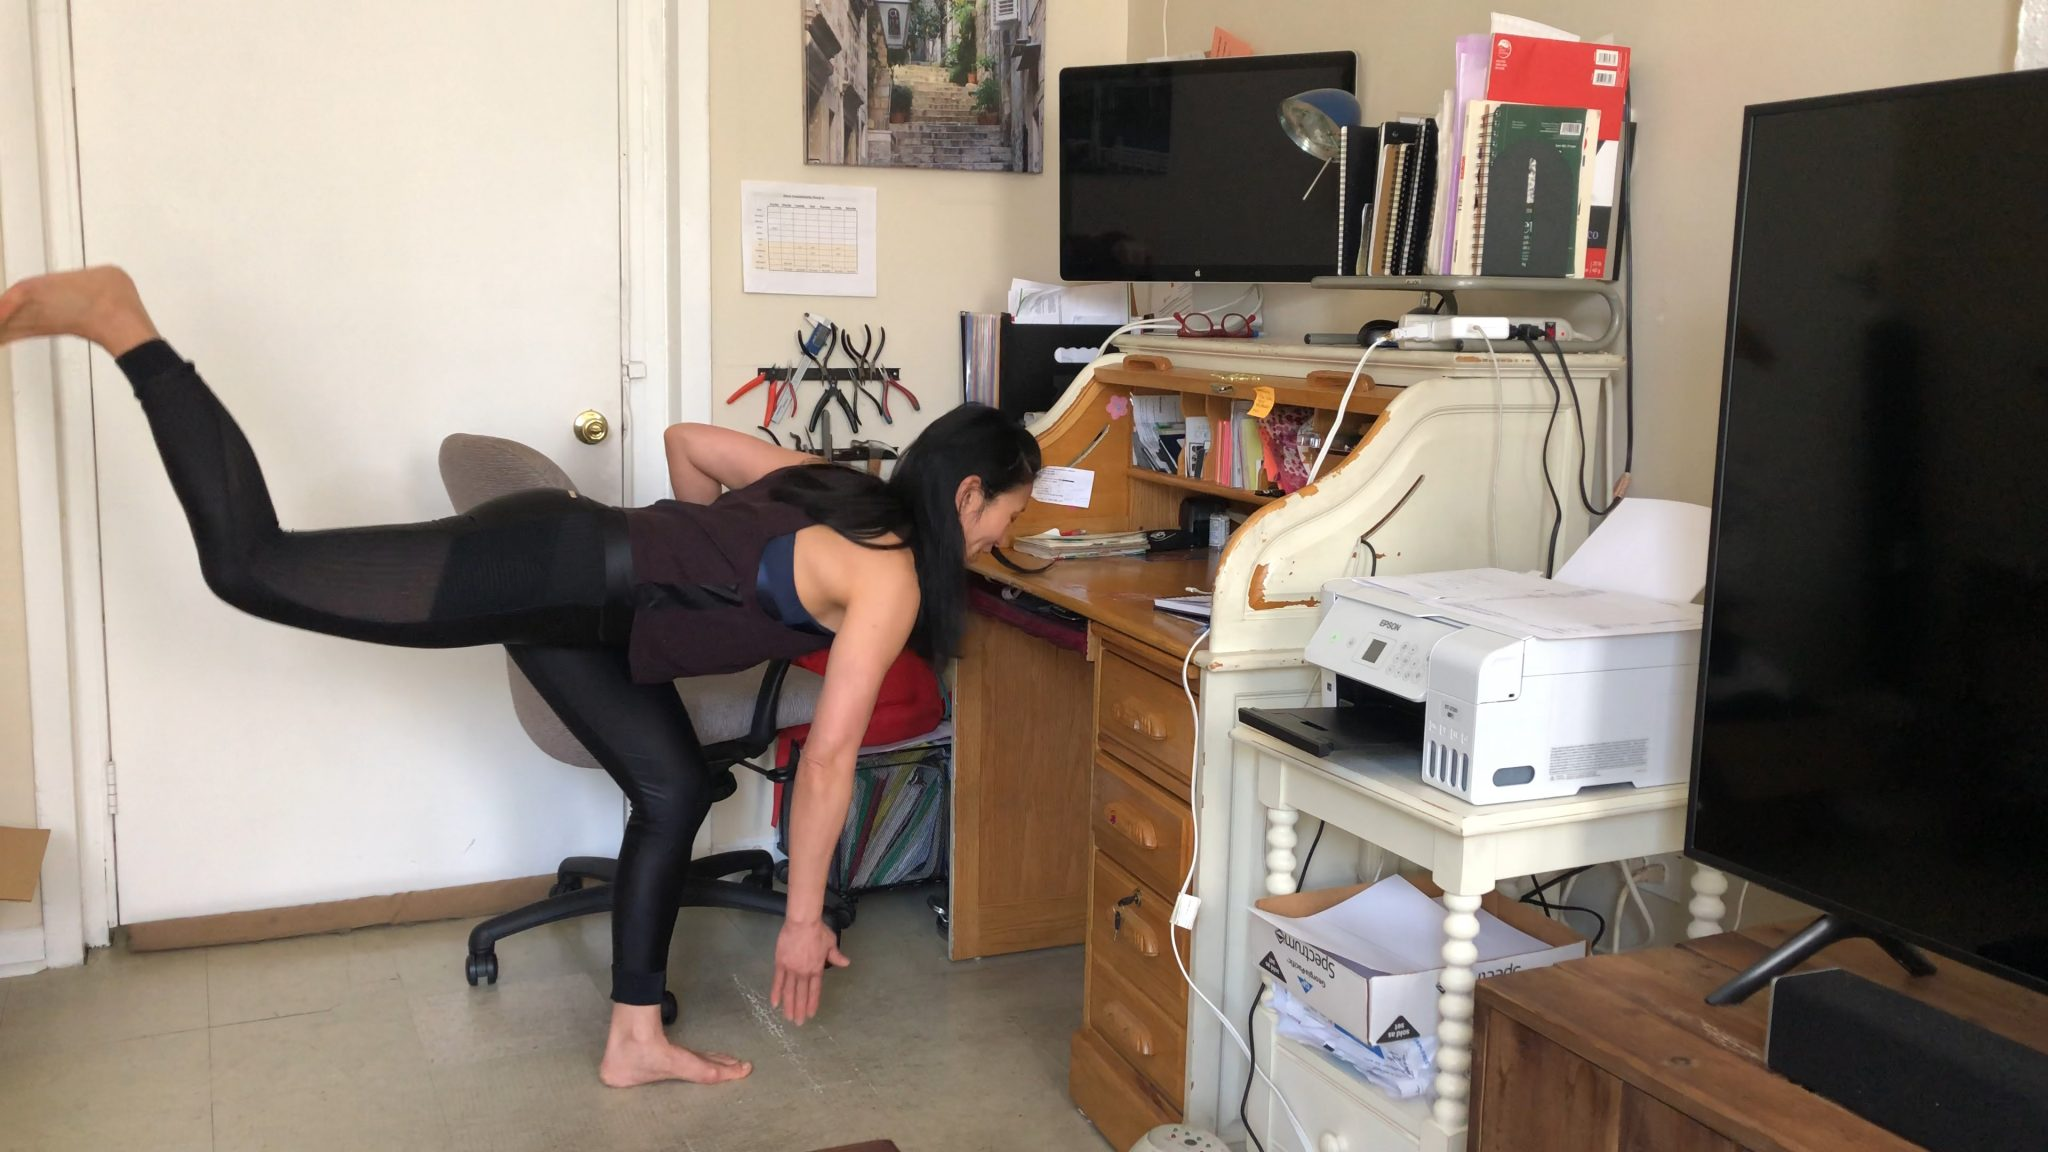 5 Minute Workout: Exercise In Between Zoom Calls While You Work At Home